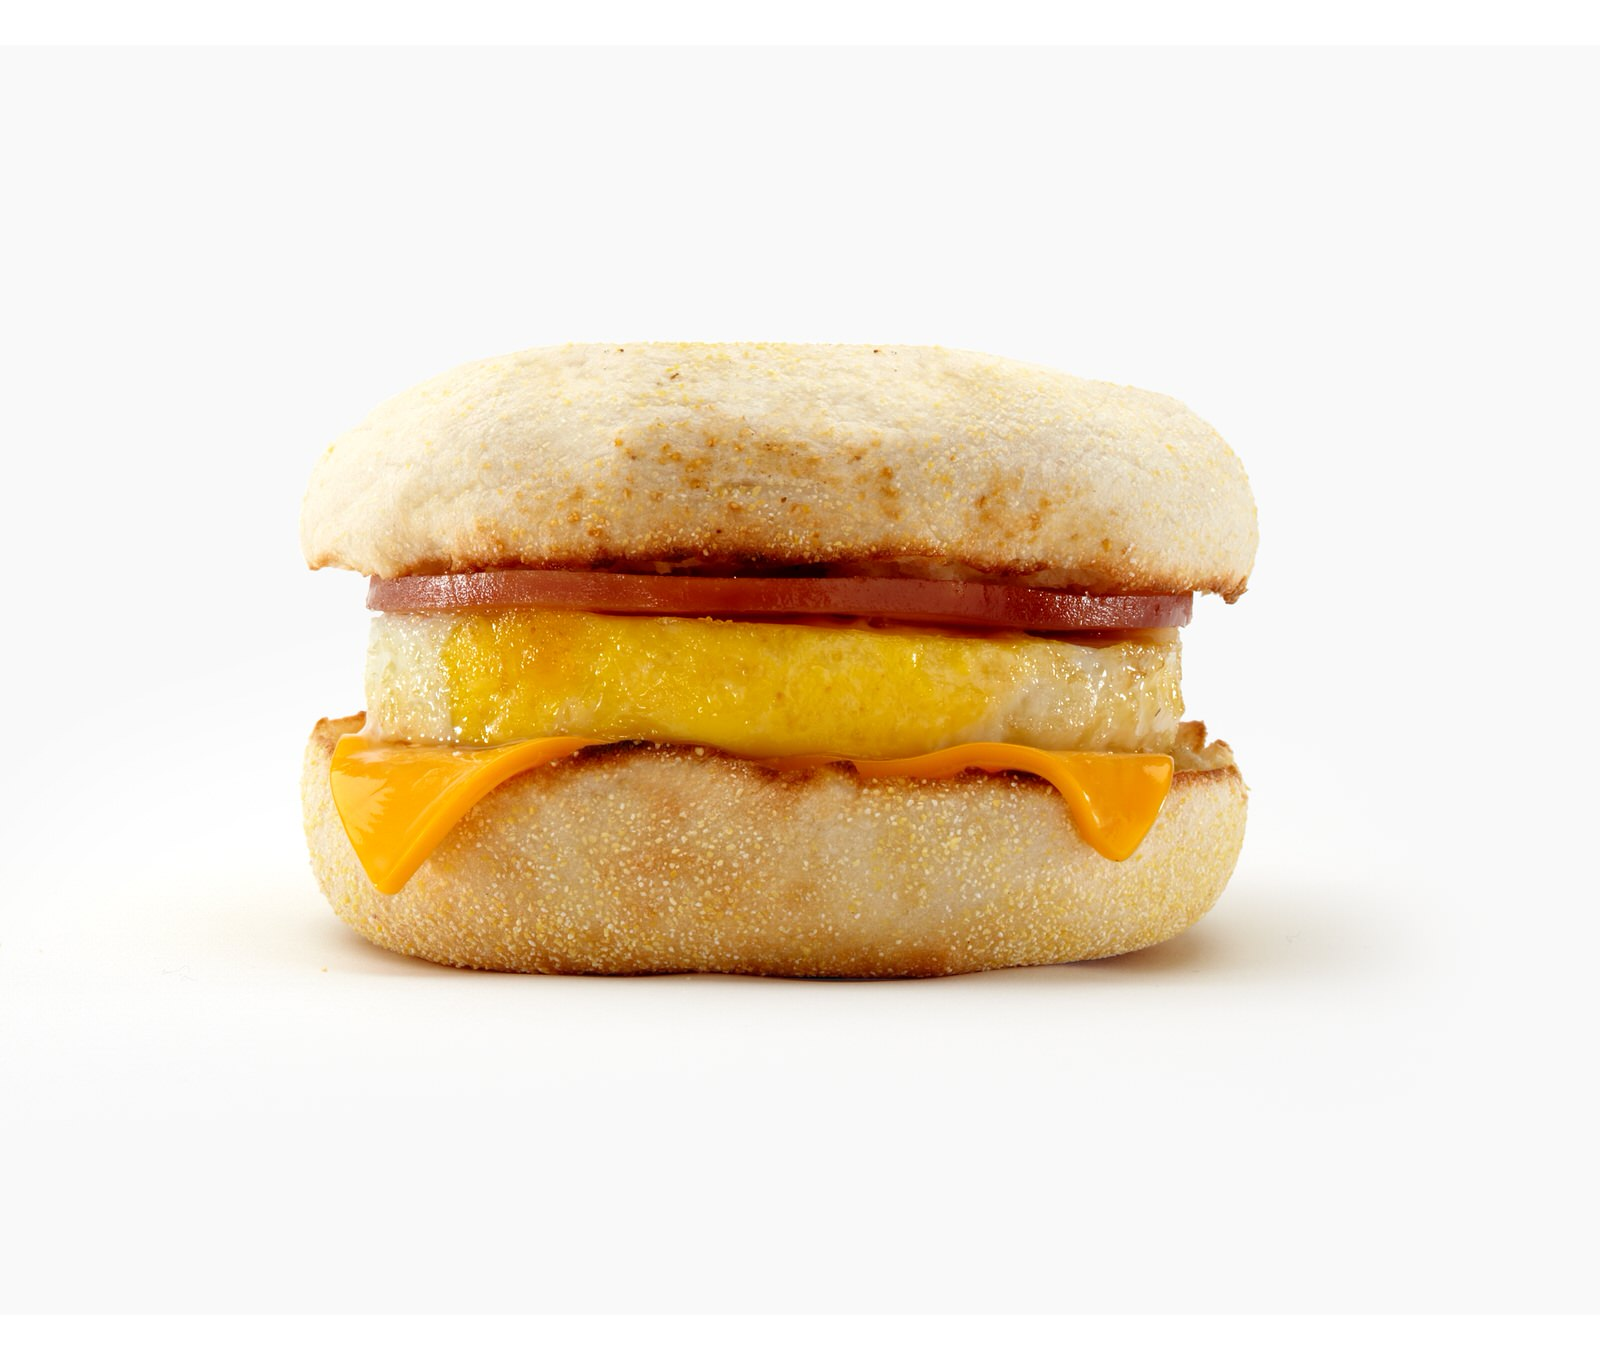 McMuffin goes mainstream